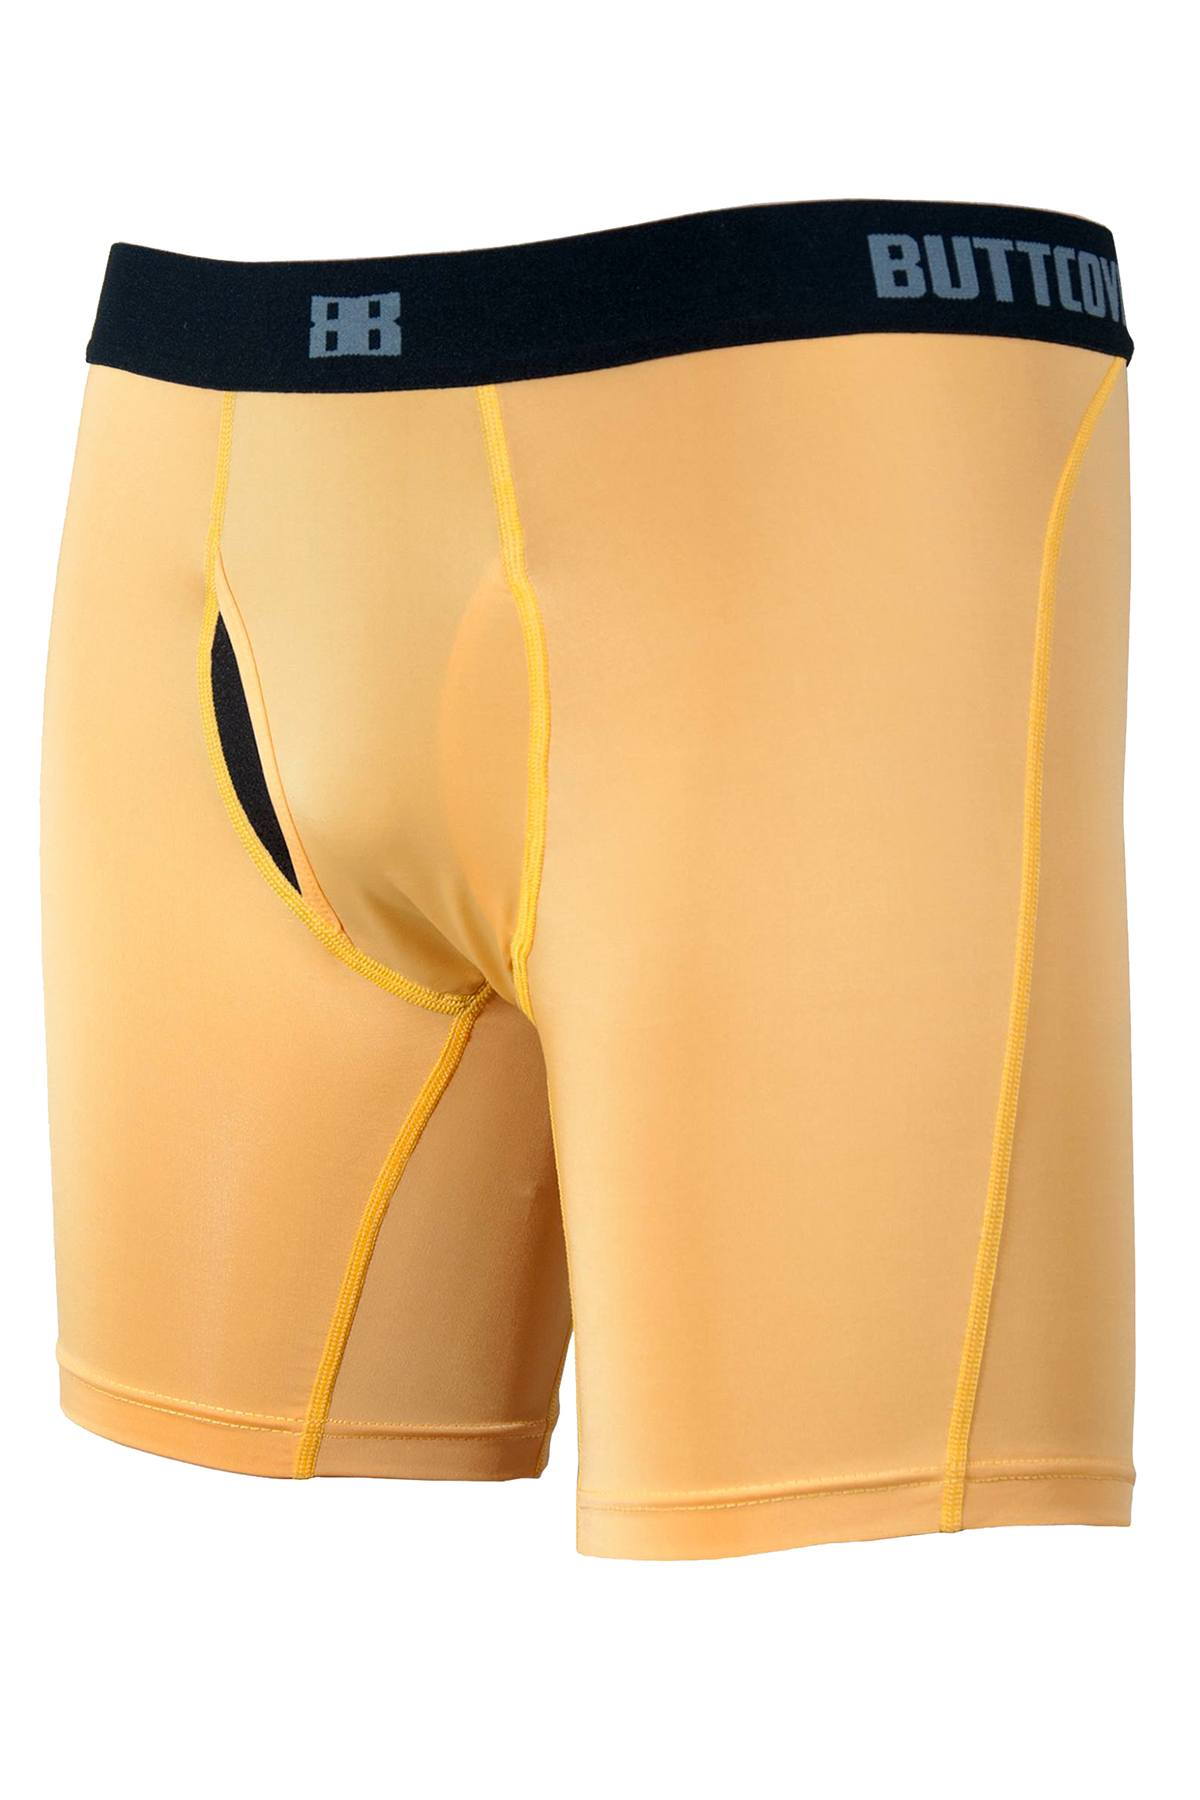 Buttcovers Sandstone Boxer Brief